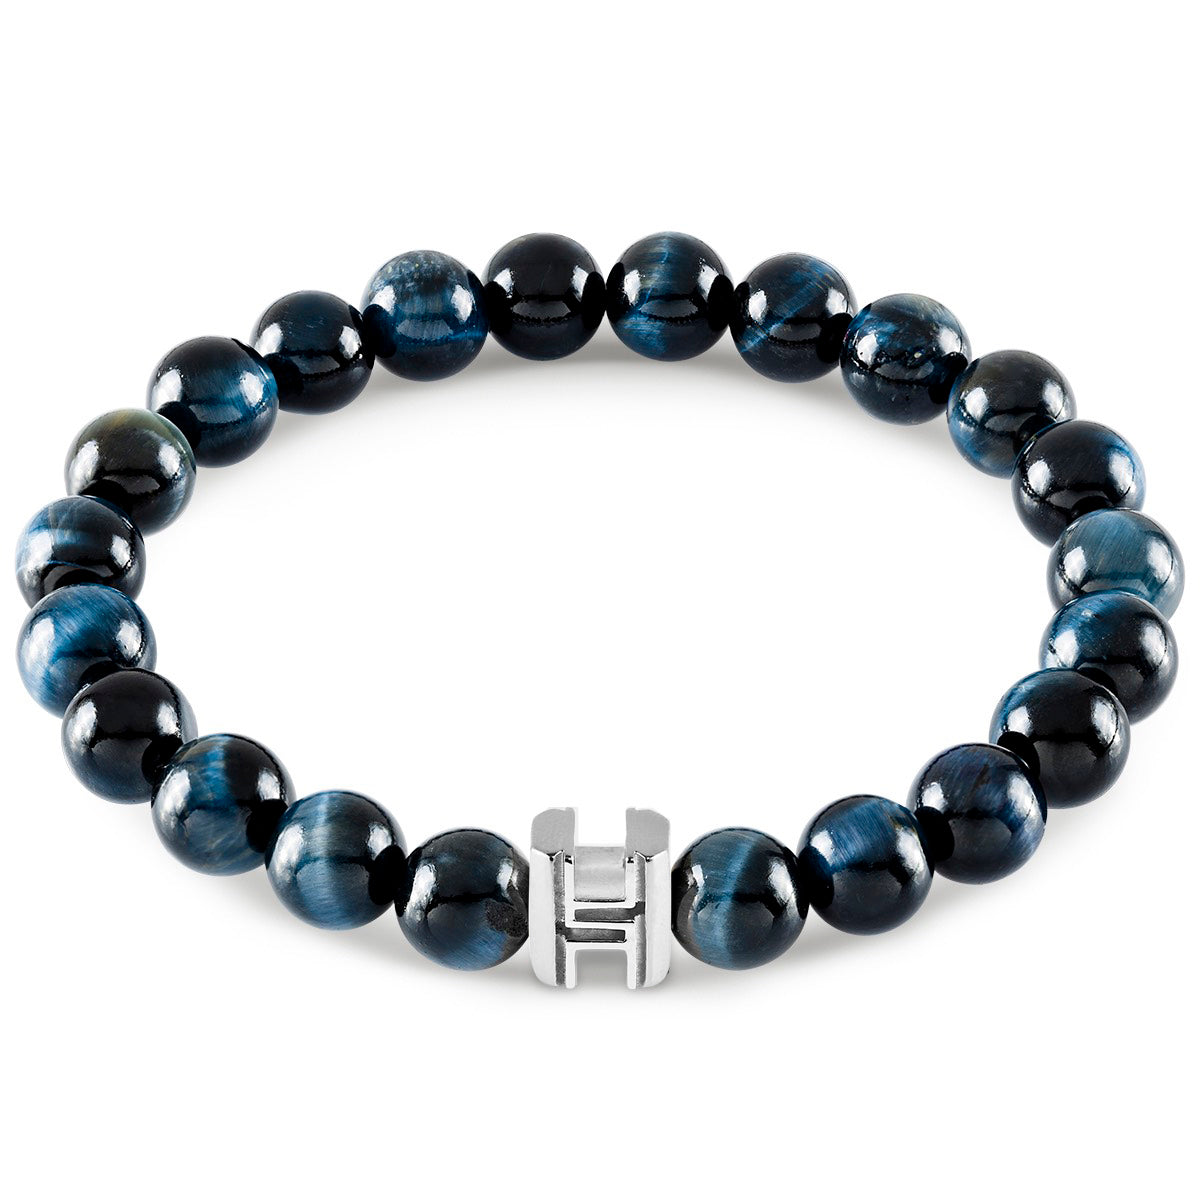 The Signature Blue Tiger Eye Bracelet